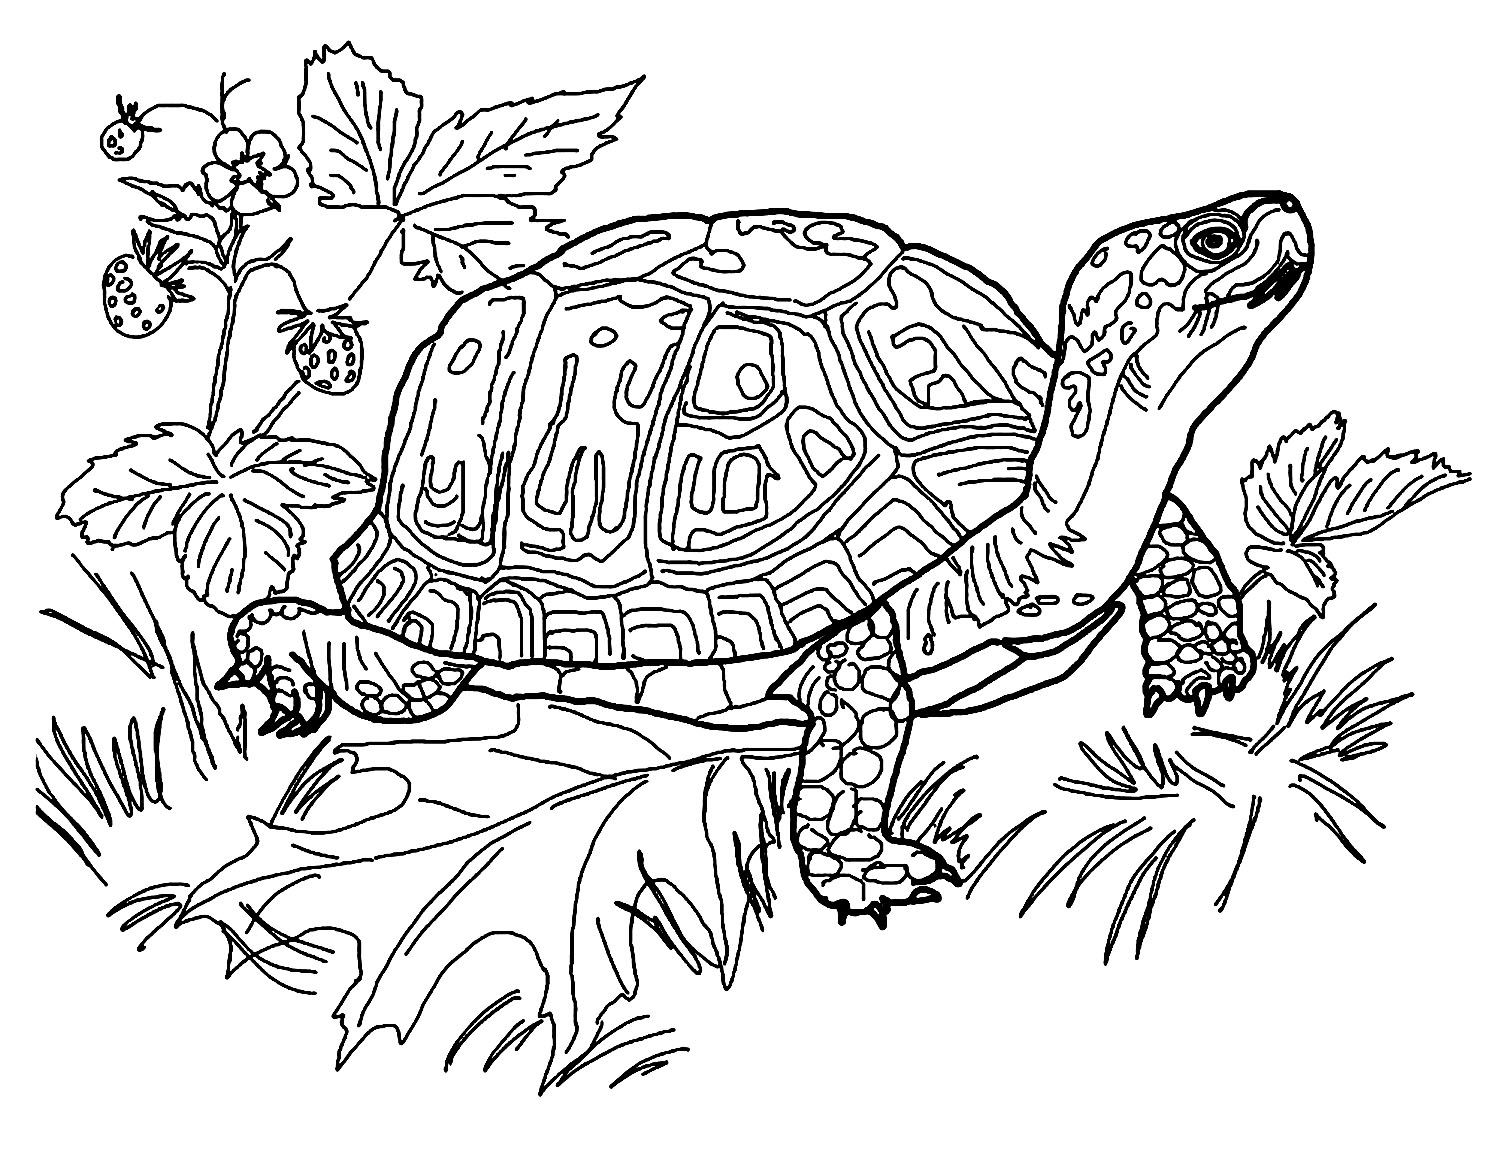 tortoise colouring pictures sea turtle line drawing at getdrawings free download pictures colouring tortoise